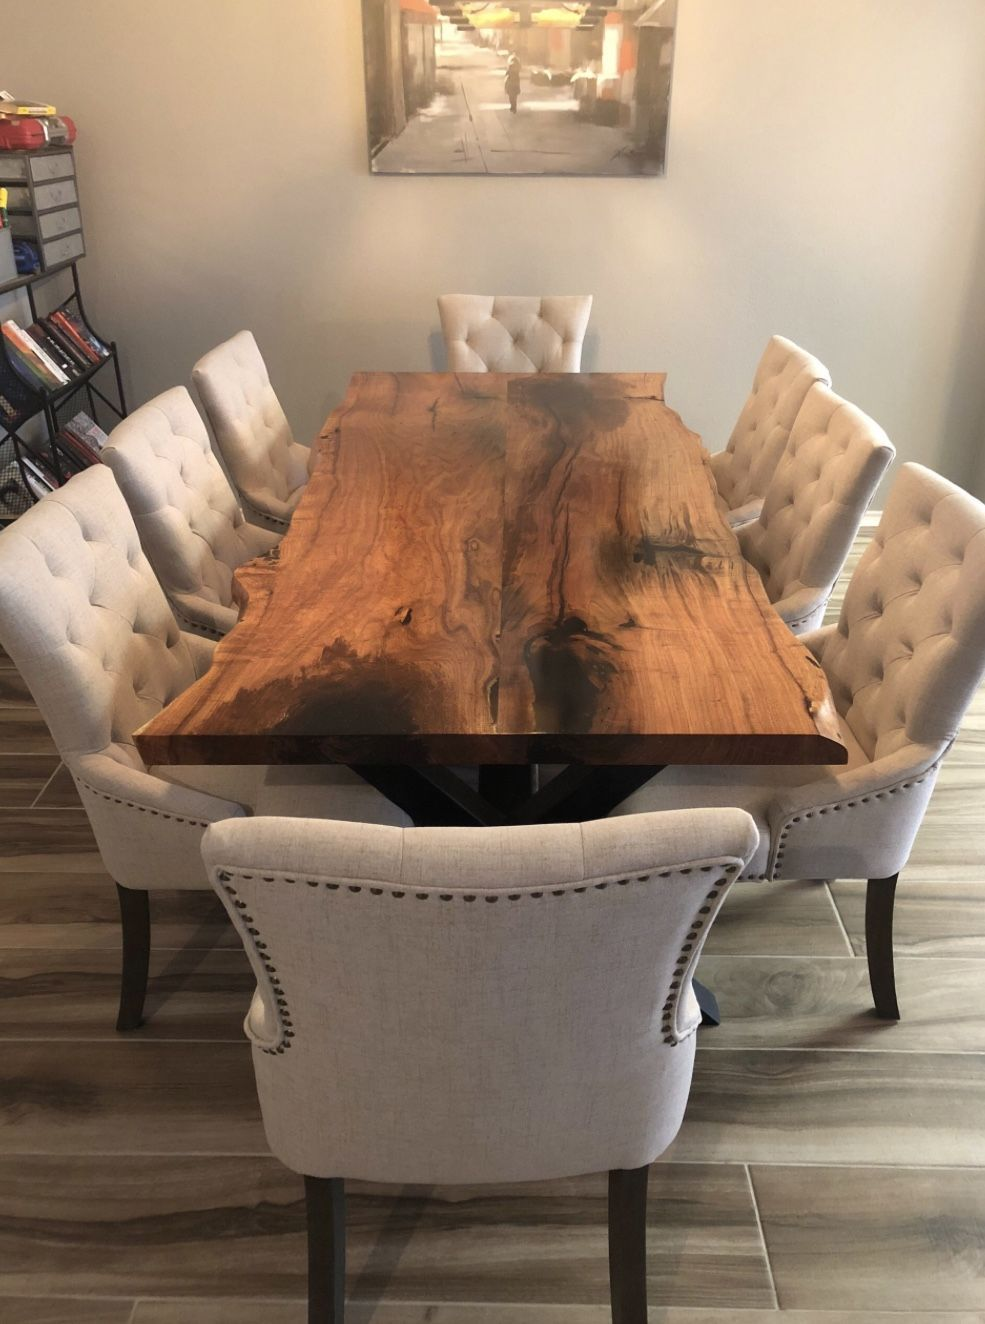 Fine Wood Table Design Gallery In 2020 Live Edge Table Dining